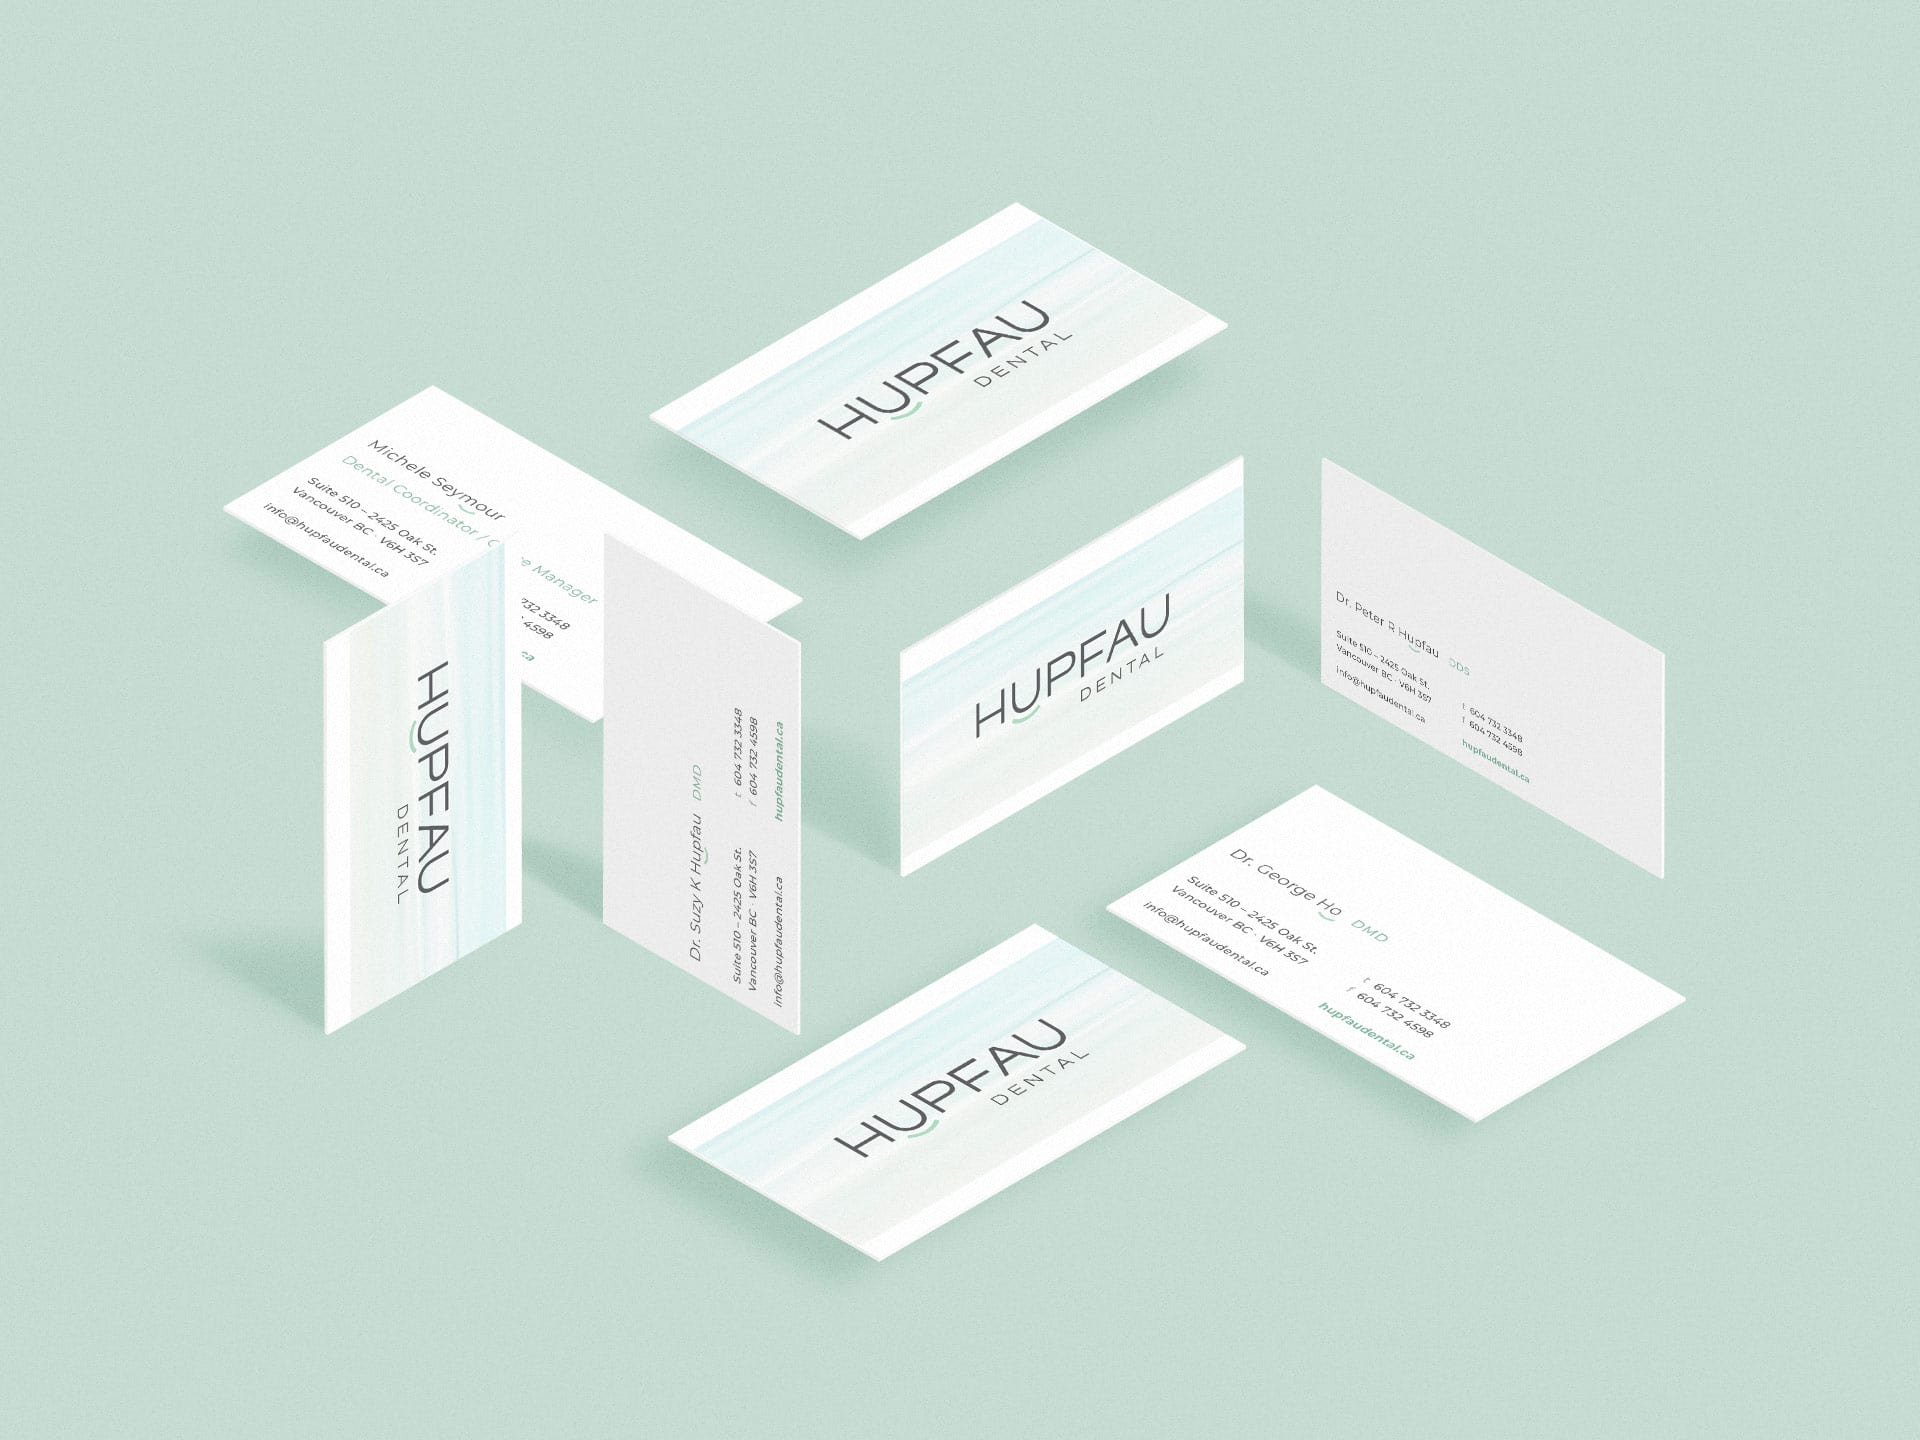 Y5 Creative Case Studies Hupfau Dental BusinessCards